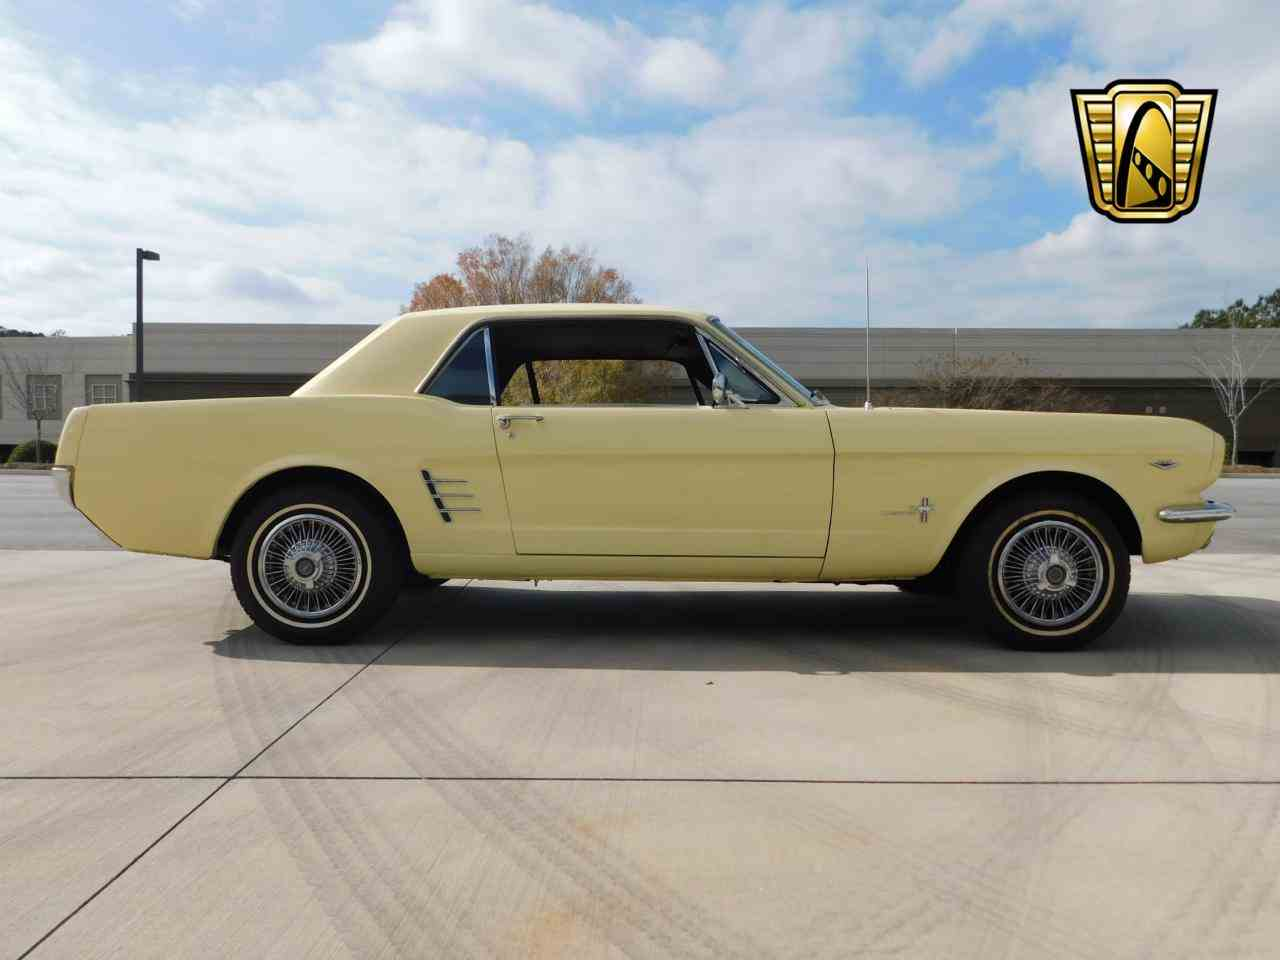 Large Picture of 1966 Ford Mustang located in Georgia - $19,995.00 Offered by Gateway Classic Cars - Atlanta - MBRW